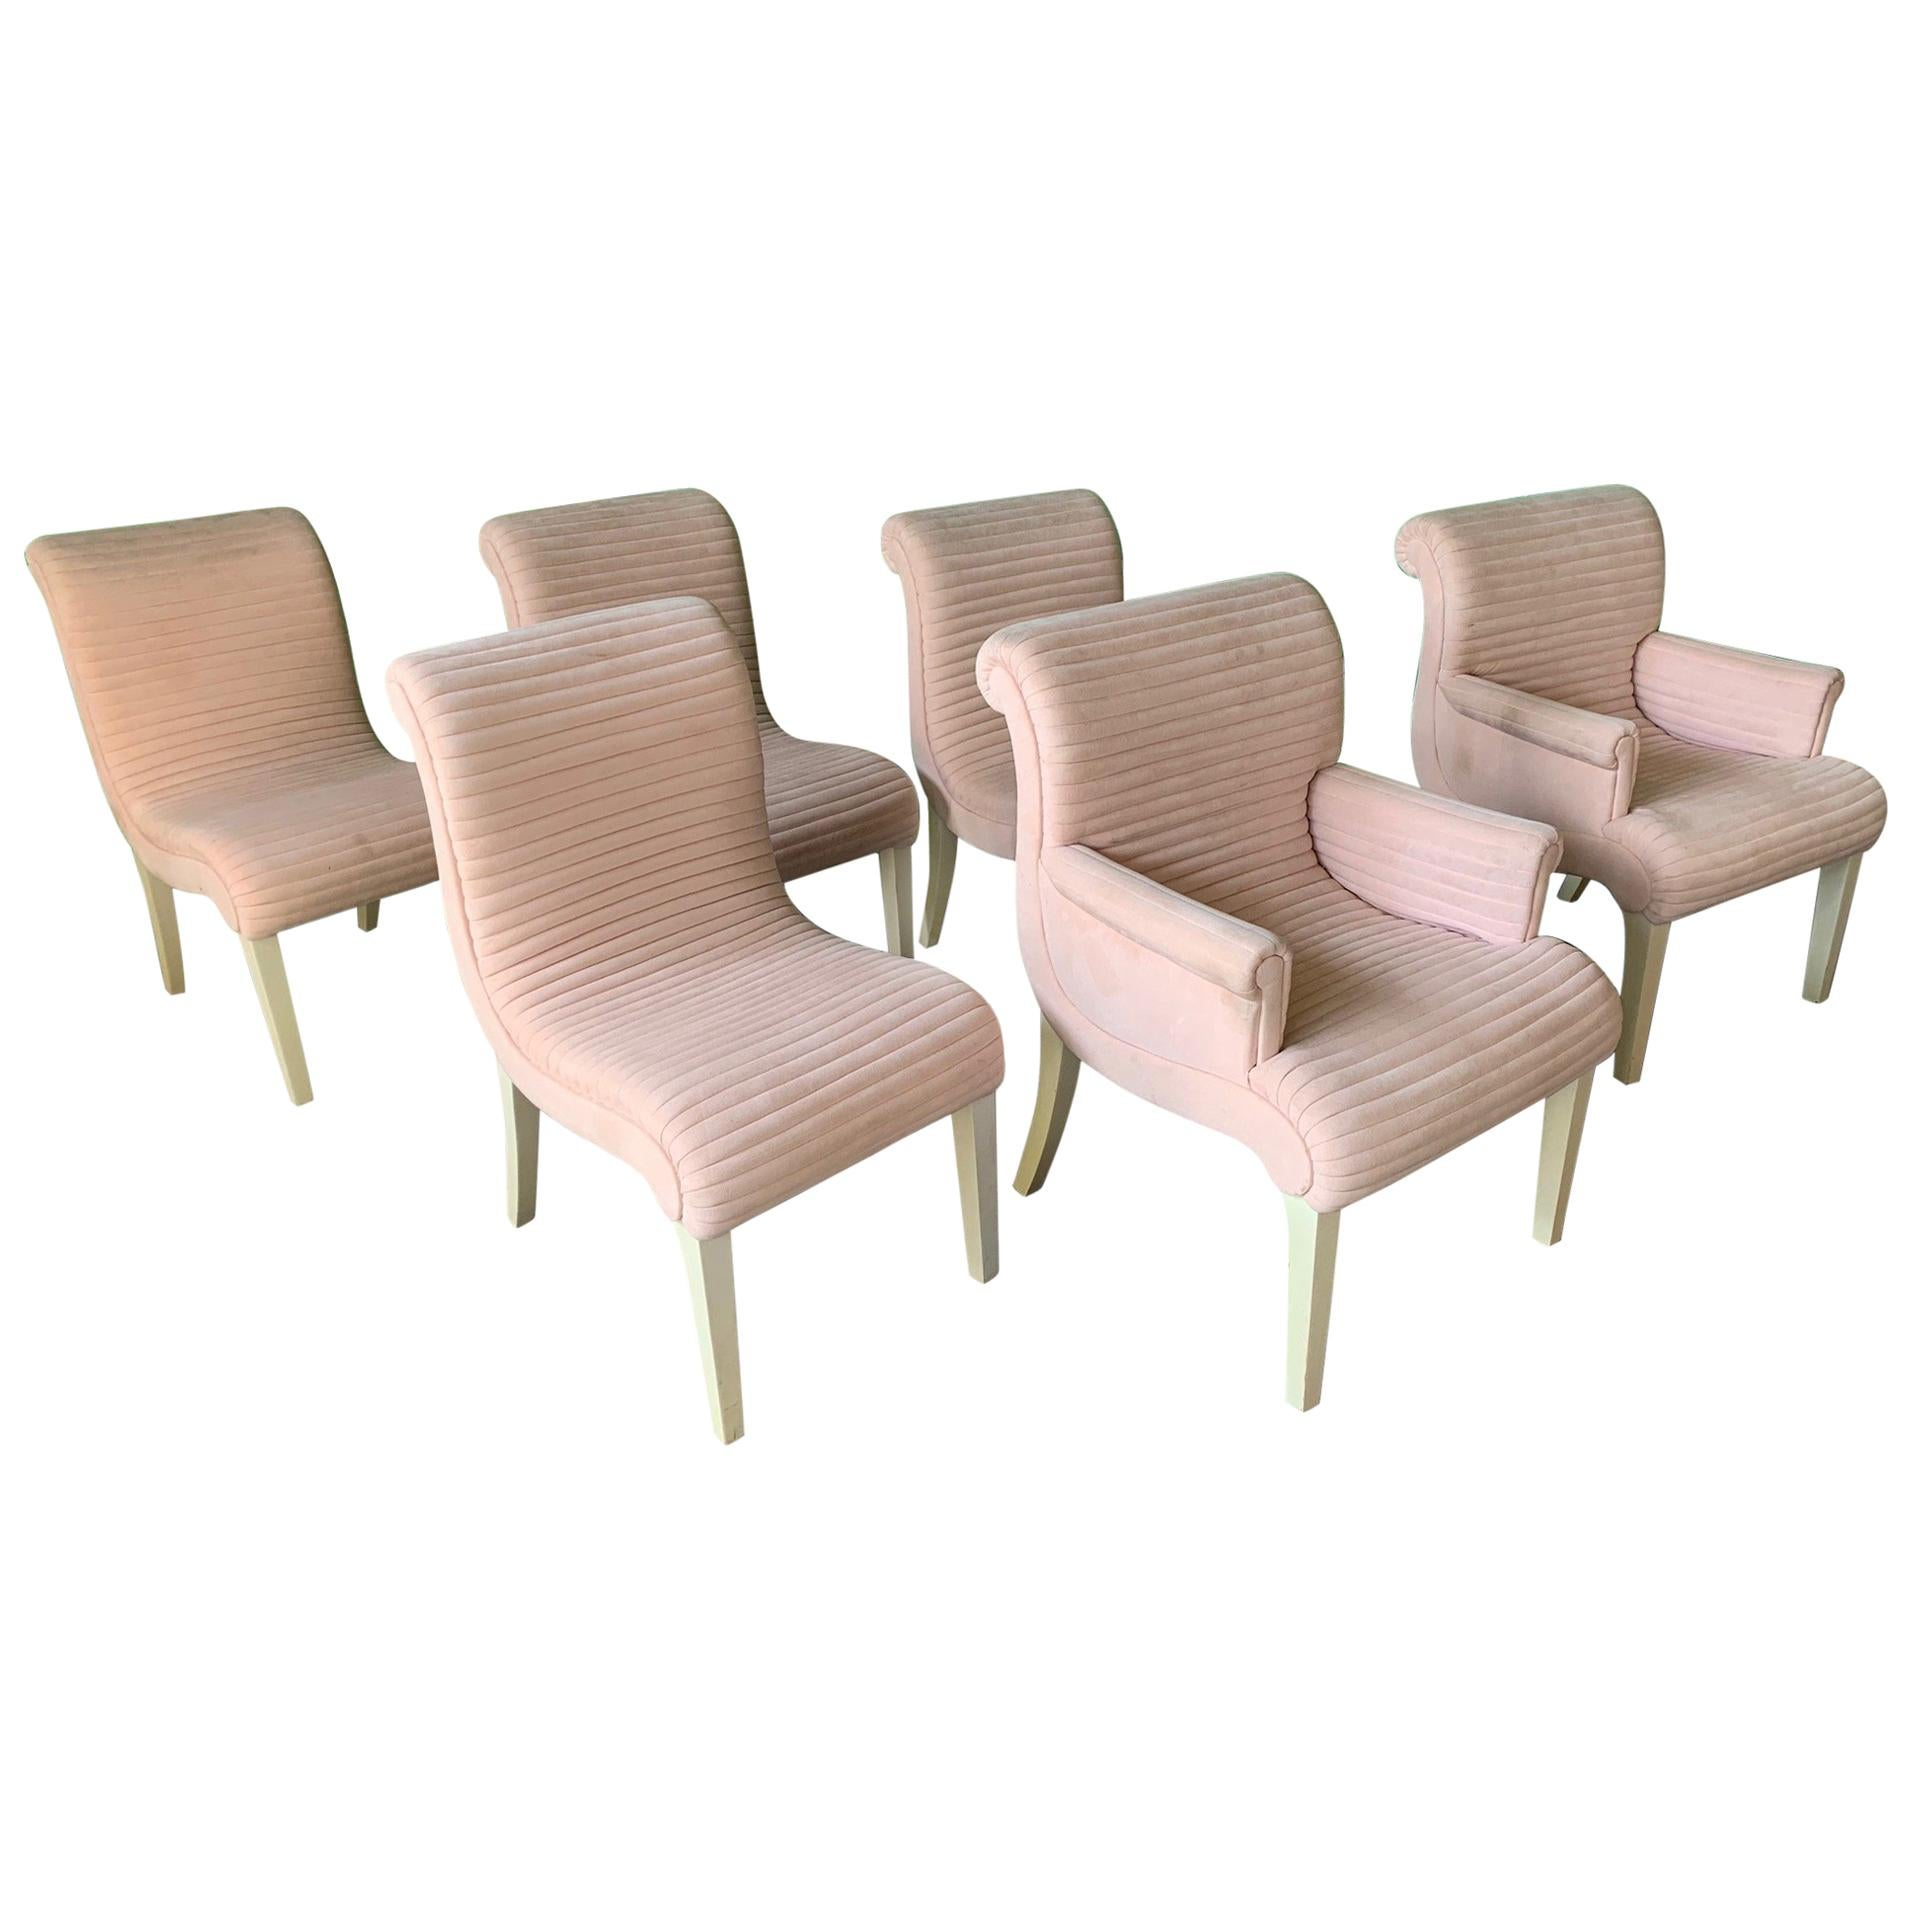 Set of Six Sculptural Pink Tufted Dining Chairs For Sale  sc 1 st  1stDibs & Set of Six Sculptural Pink Tufted Dining Chairs For Sale at 1stdibs